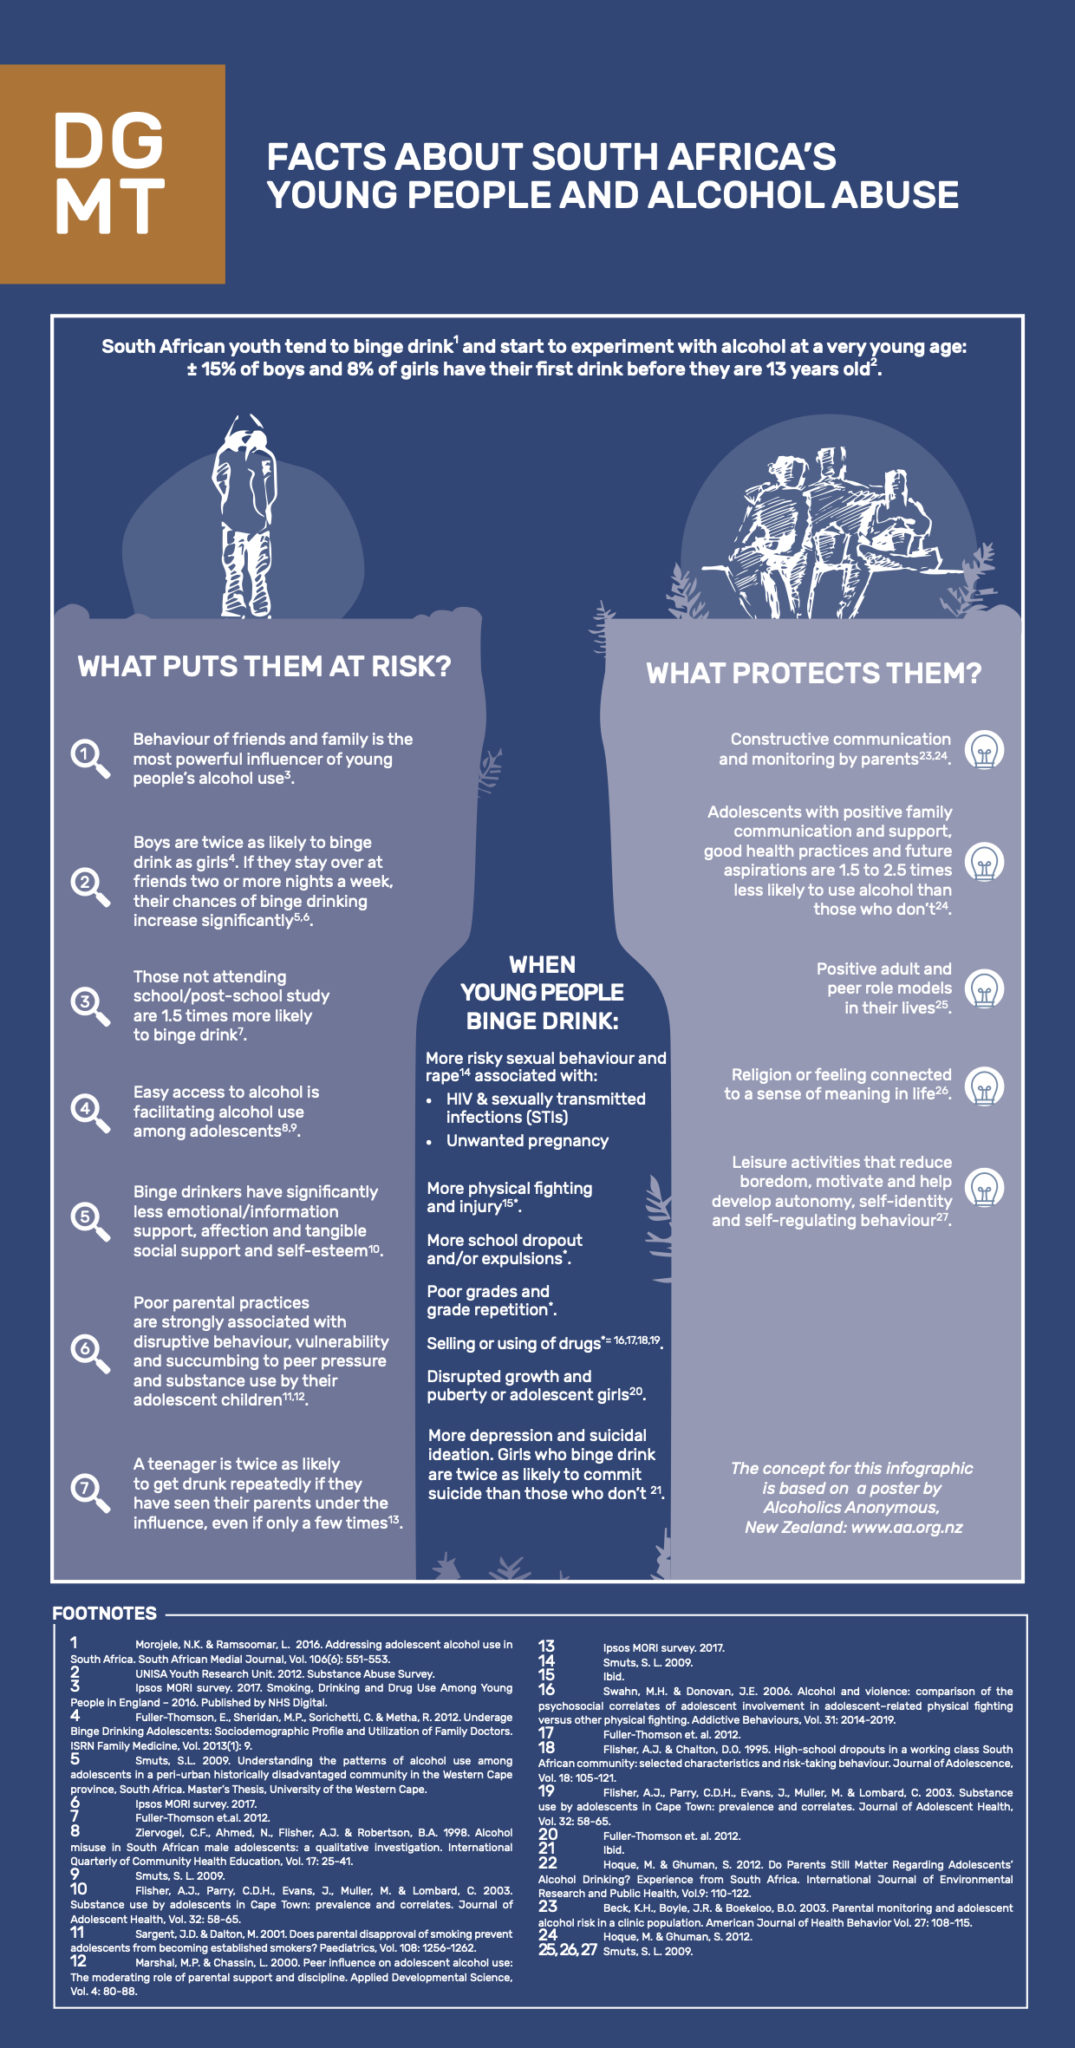 Infographic facts about alcohol abuse among South Africa's youth